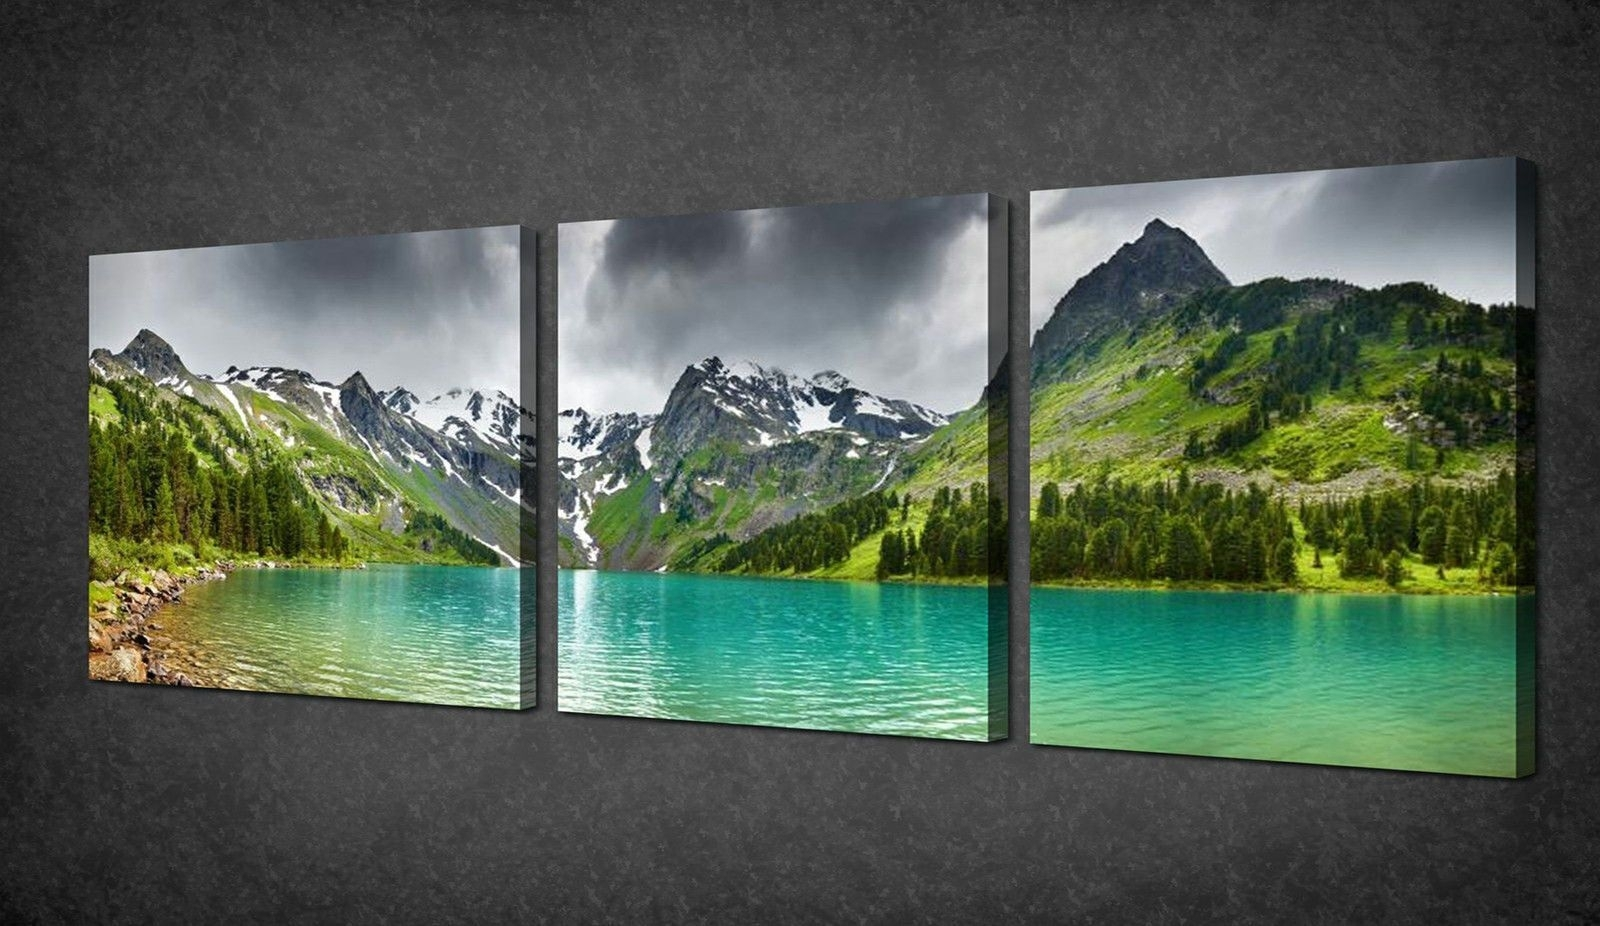 Compact Draw Panoramic Canvas Wall Art Eye Most Important Feel Regarding Recent Panoramic Wall Art (View 6 of 15)